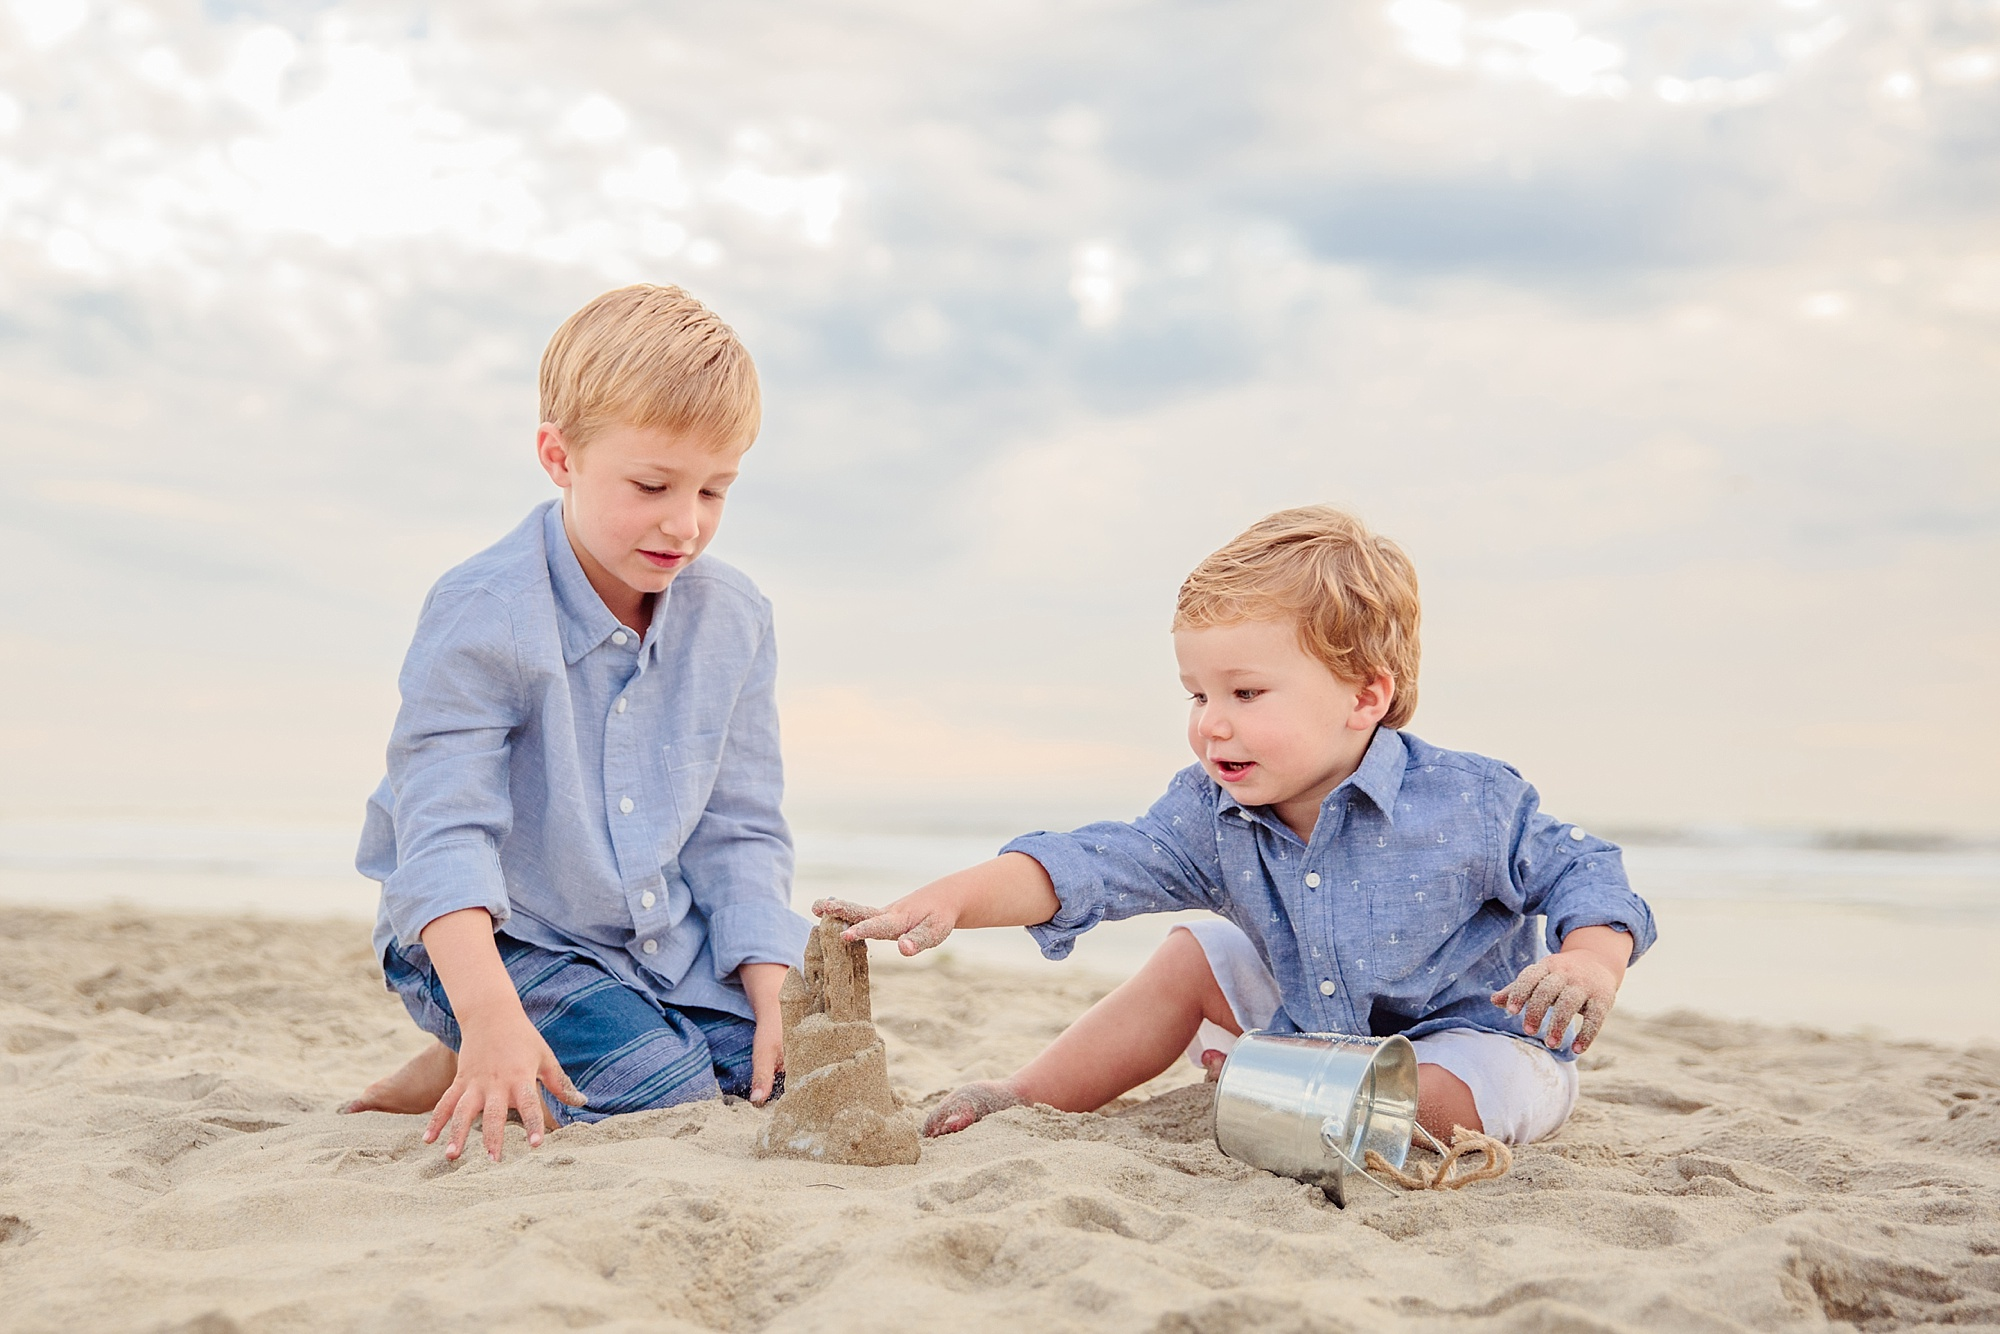 San Diego Photographer | San Diego Childcare Photography